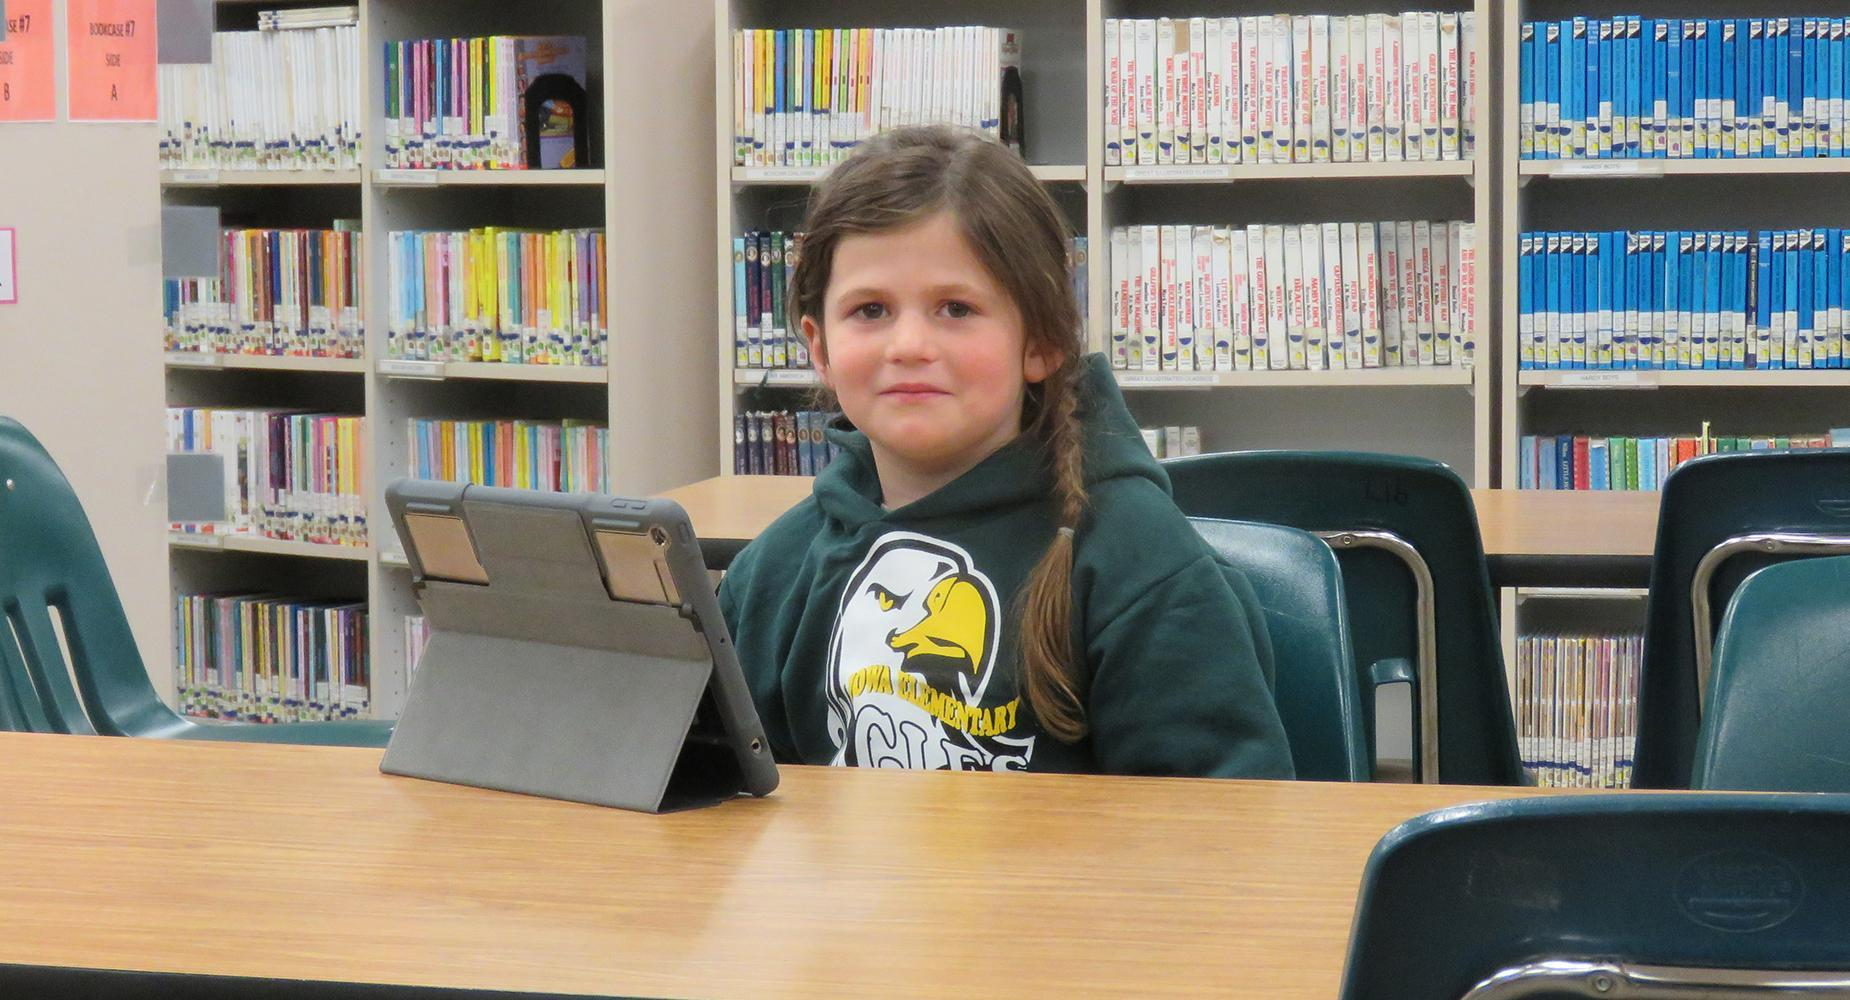 Girl in green Iowa Elementary sweatshirt sits at a table with an iPad in the library.